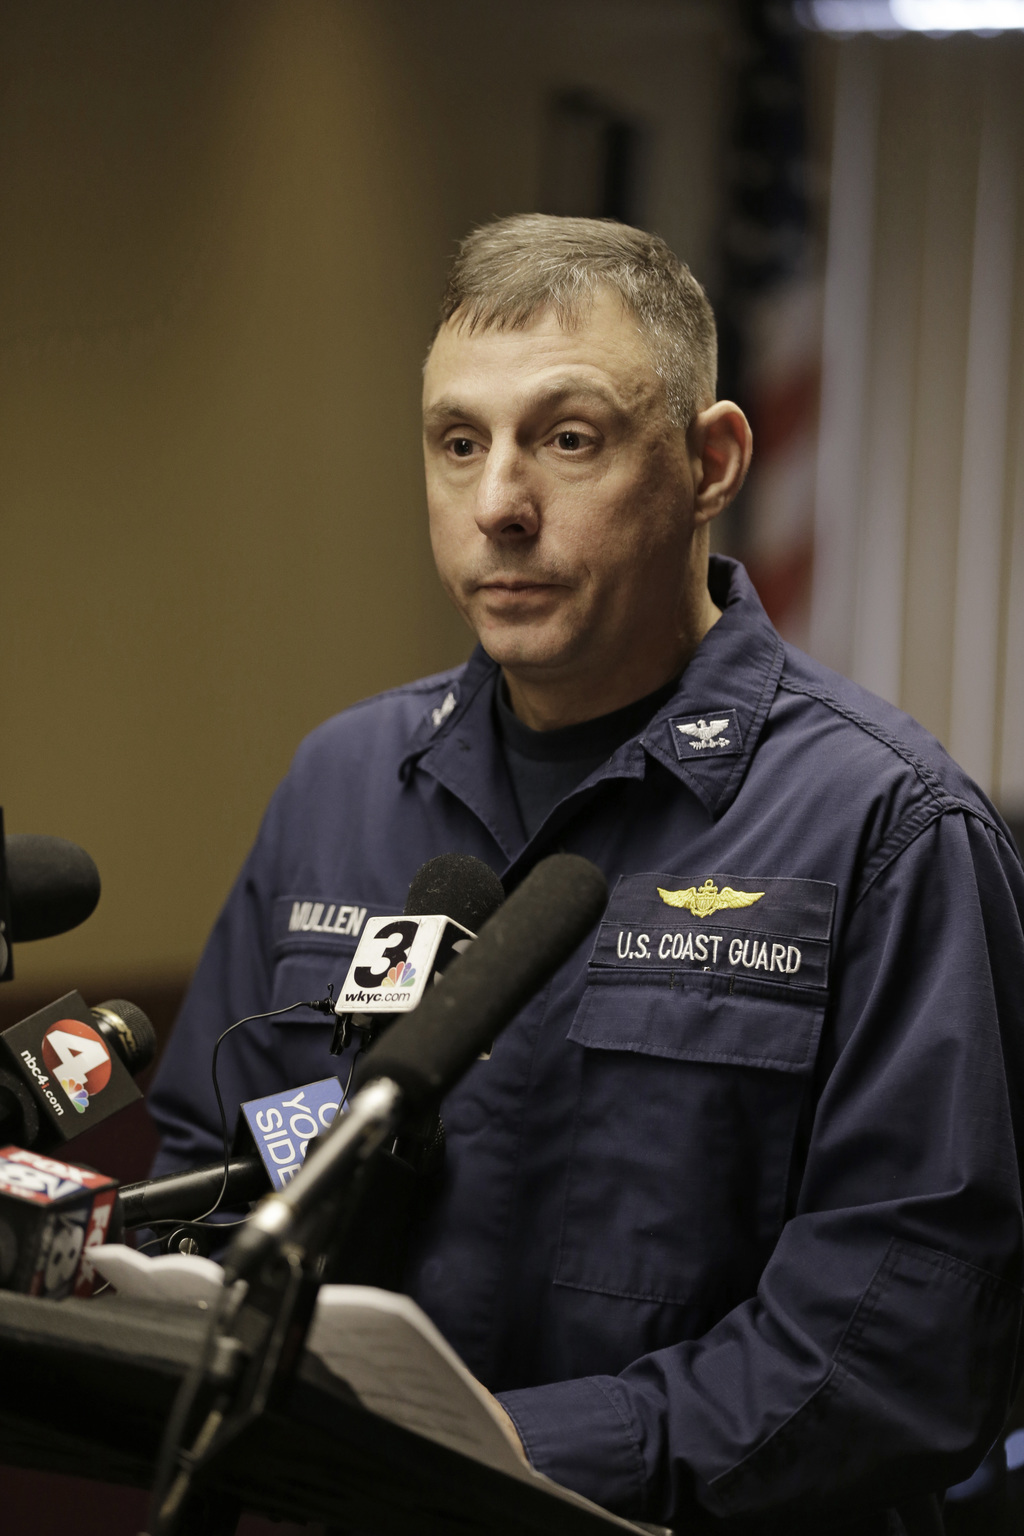 Capt. Michael Mullen of the U.S. Coast Guard answers questions during a news conference at Burke Lakefront Airport, Friday, Dec. 30, 20...